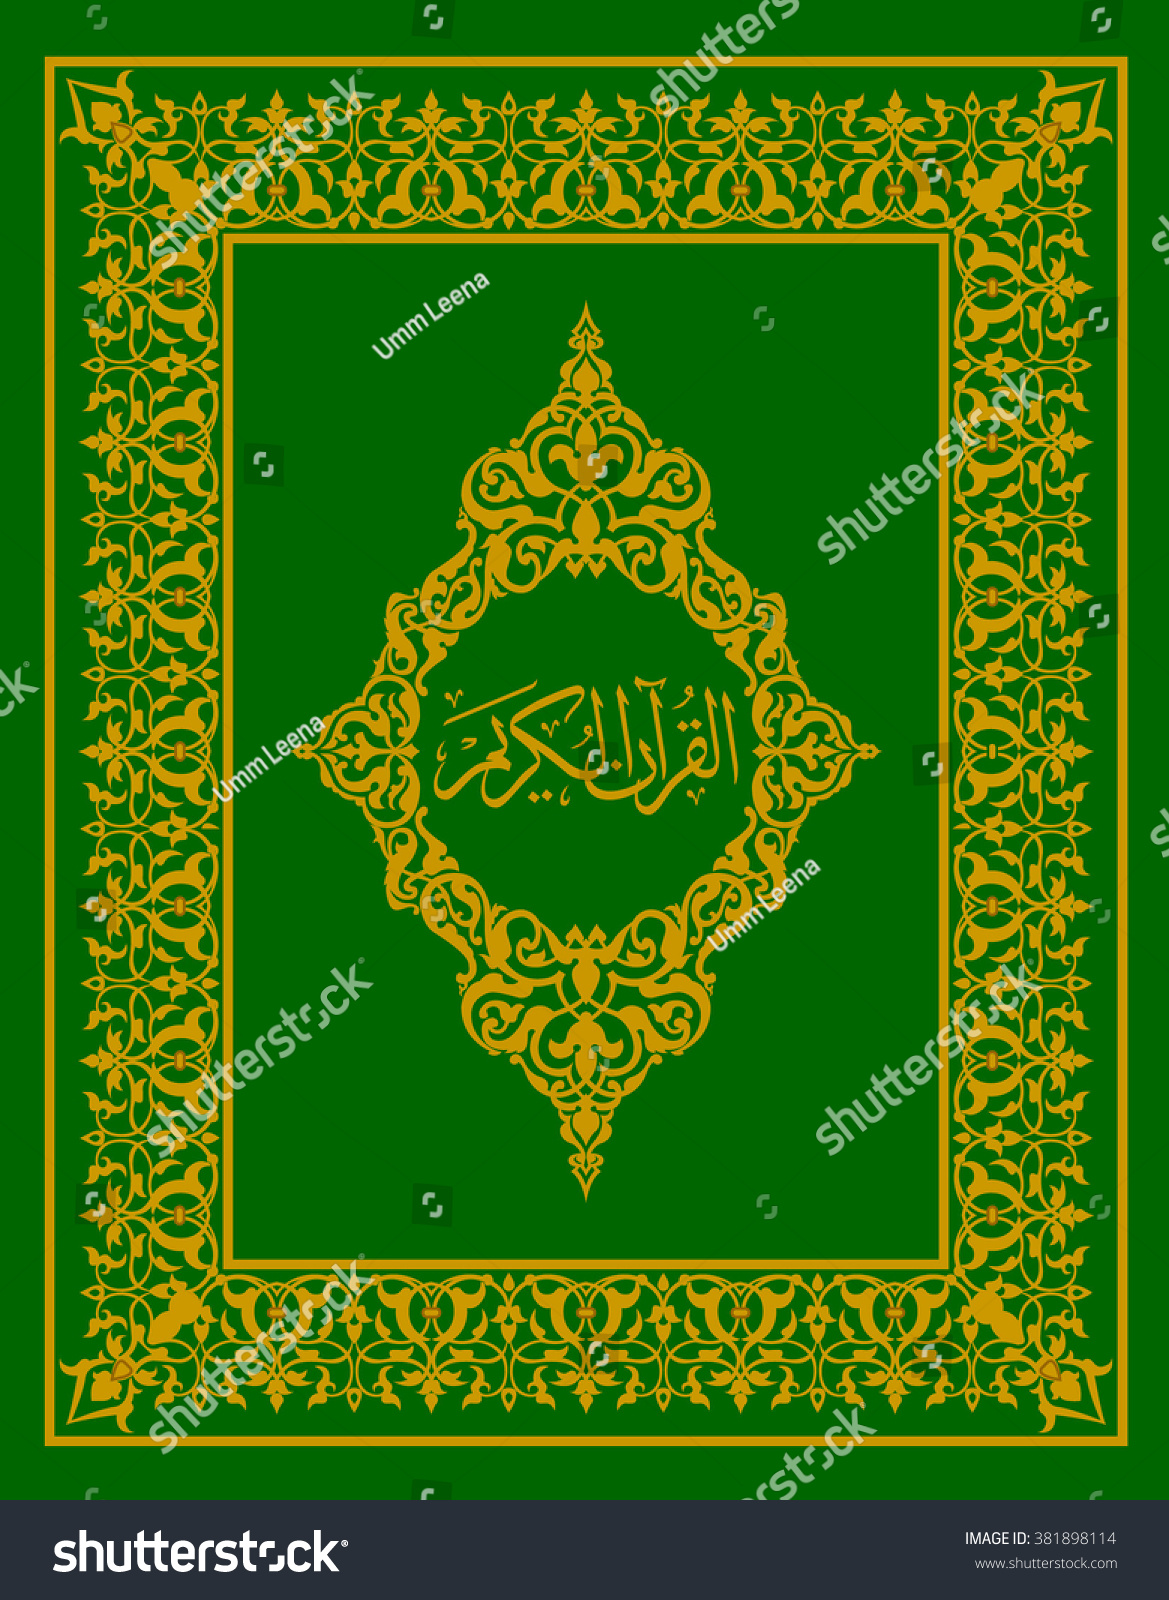 an assessment of the holy book of islam the koran Ks2 religious education islam learning how the first islamic community lived according to the teachings of the koran an introduction to the holy place mecca.